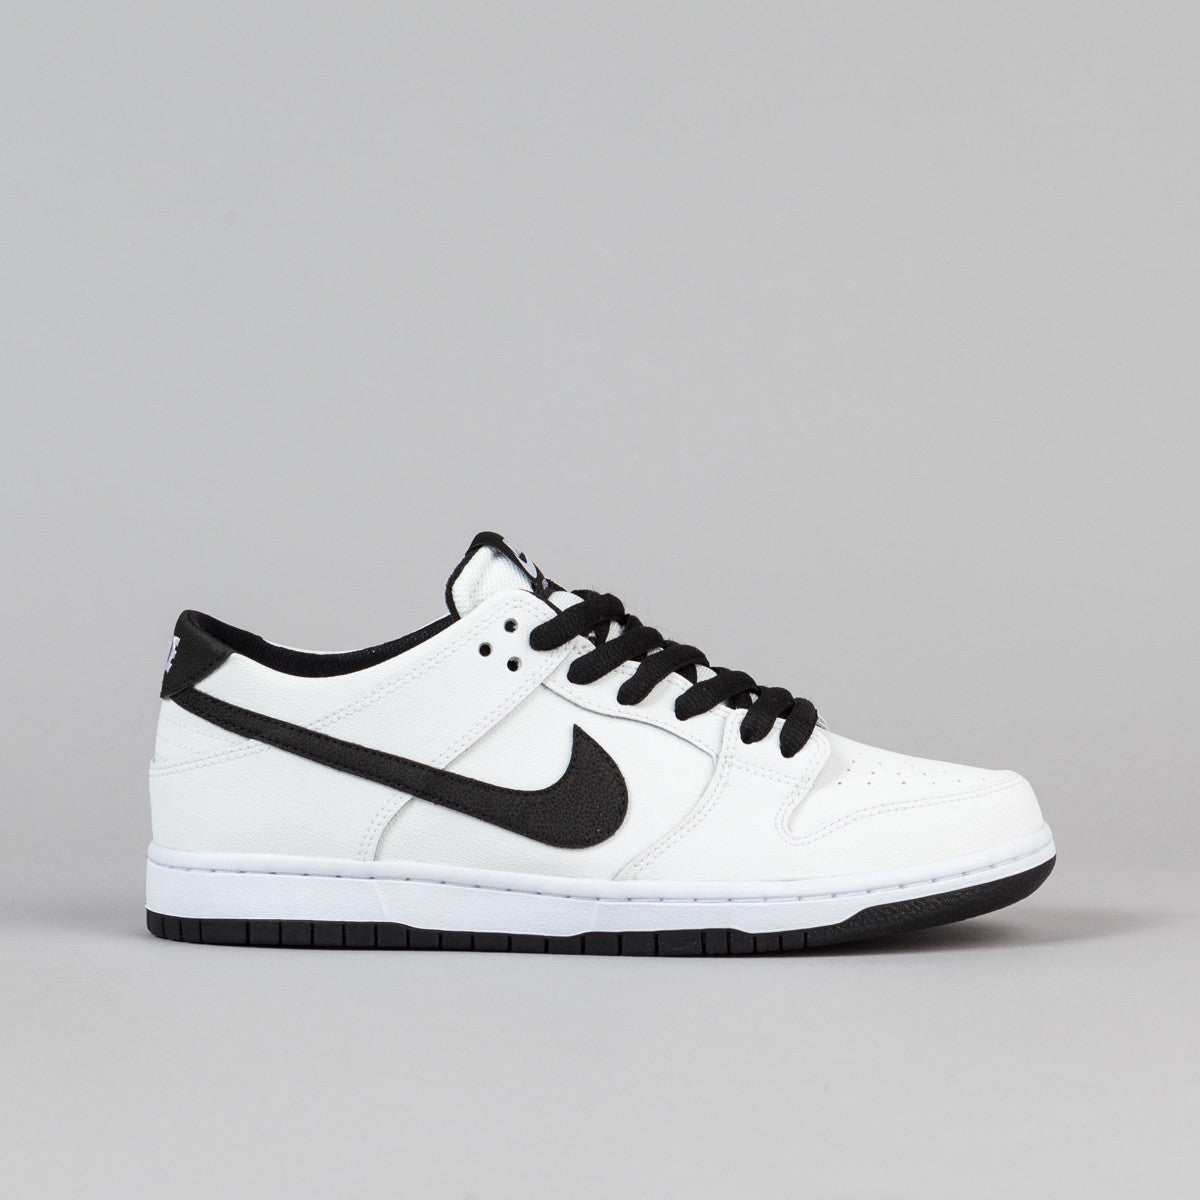 All Nike Shoes | Nordstrom